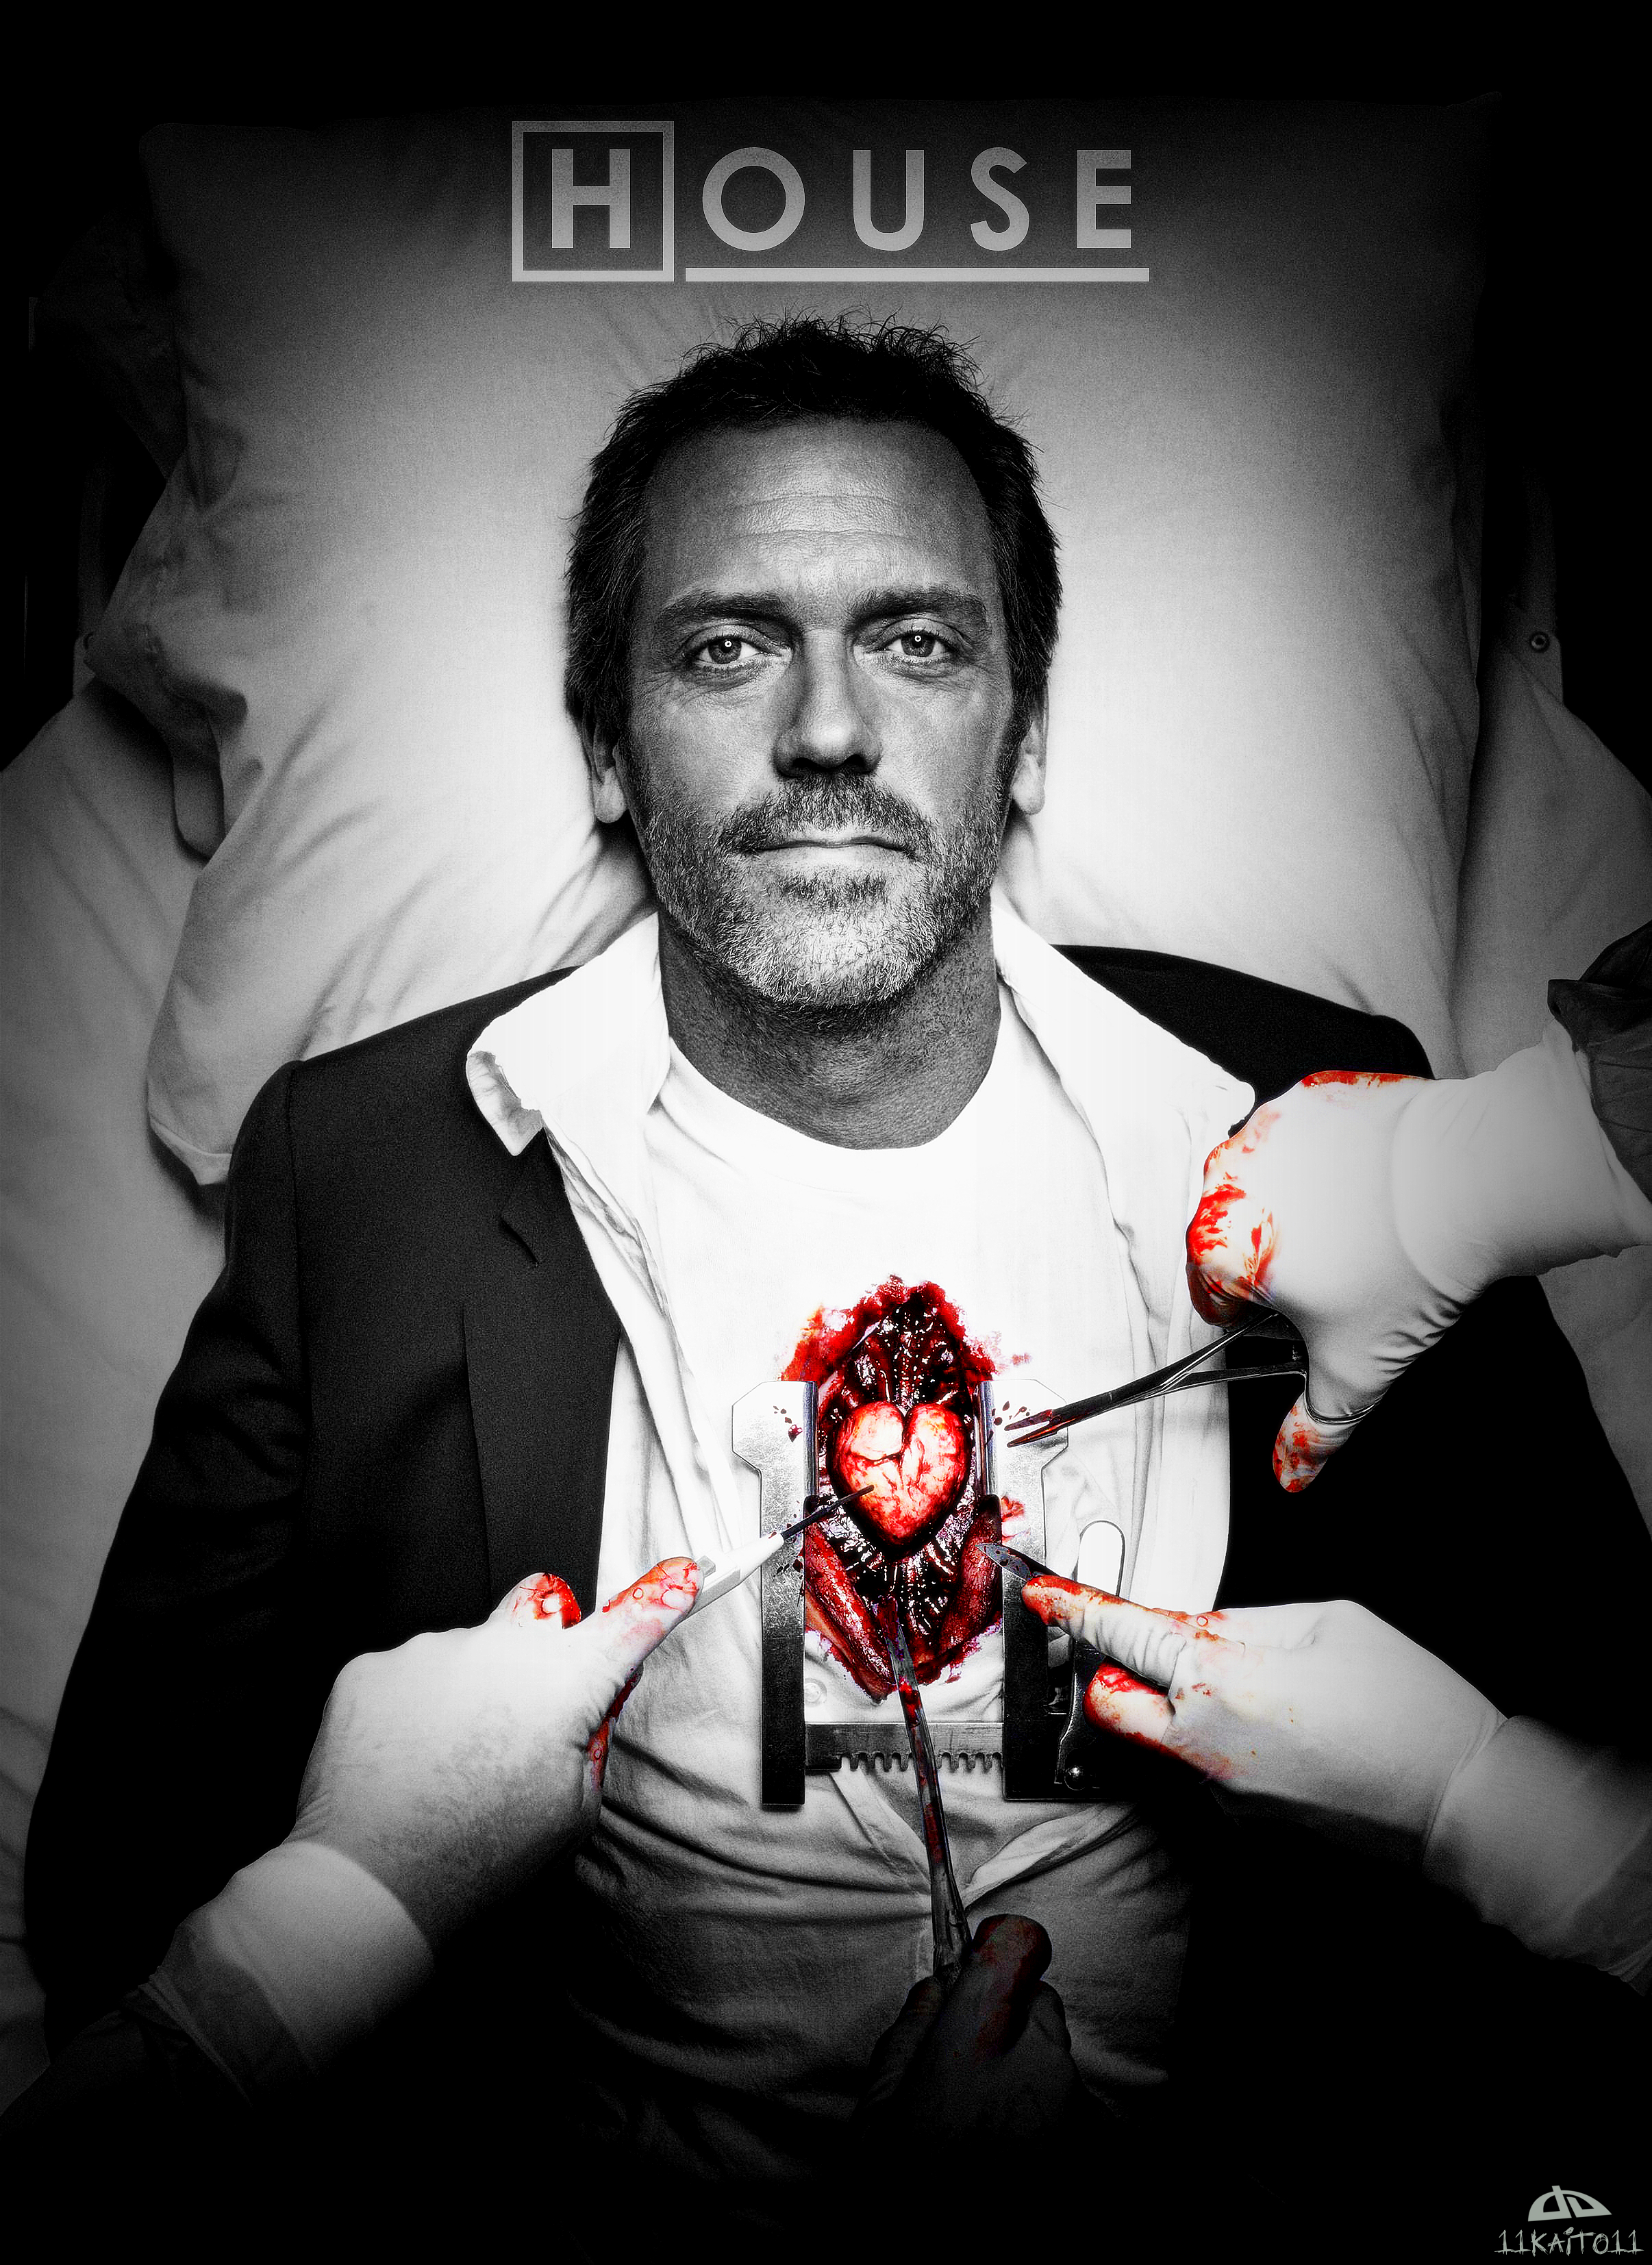 dr house  wallpaper 3  by 11kaito11 on deviantart